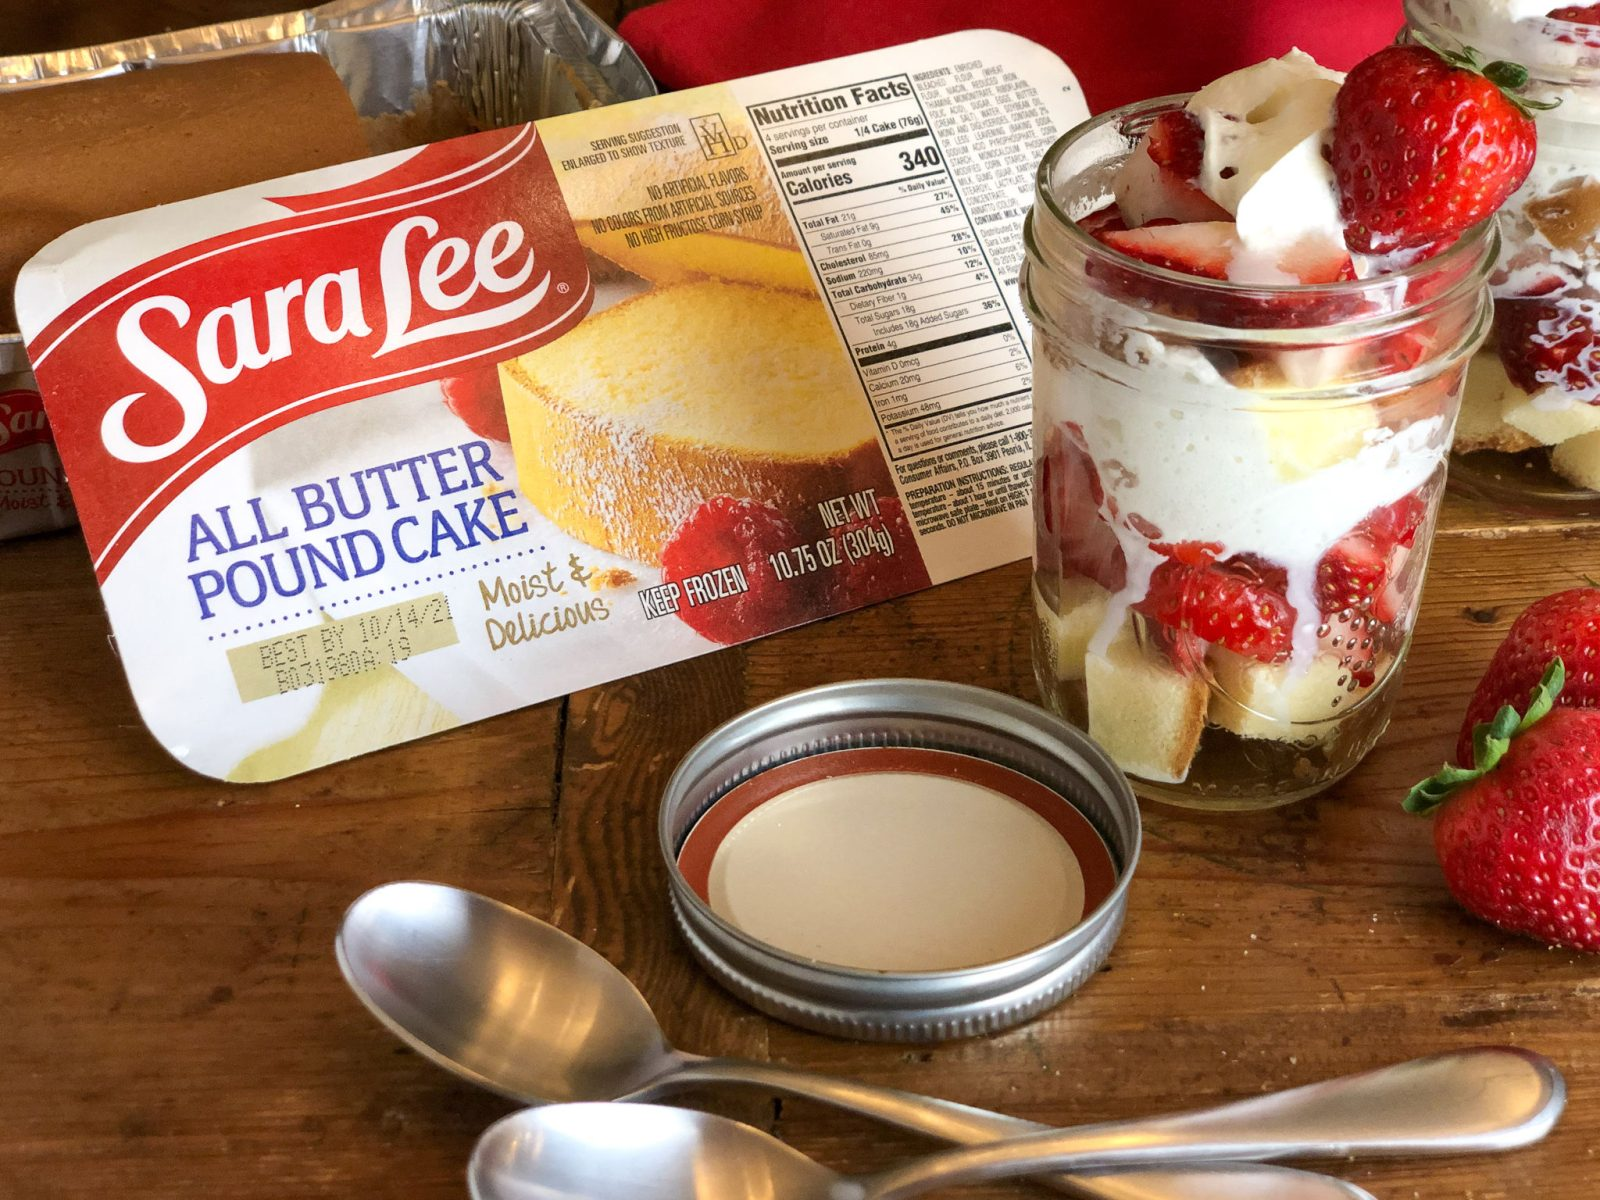 Sara Lee Pound Cake As Low As $1.40 At Publix on I Heart Publix